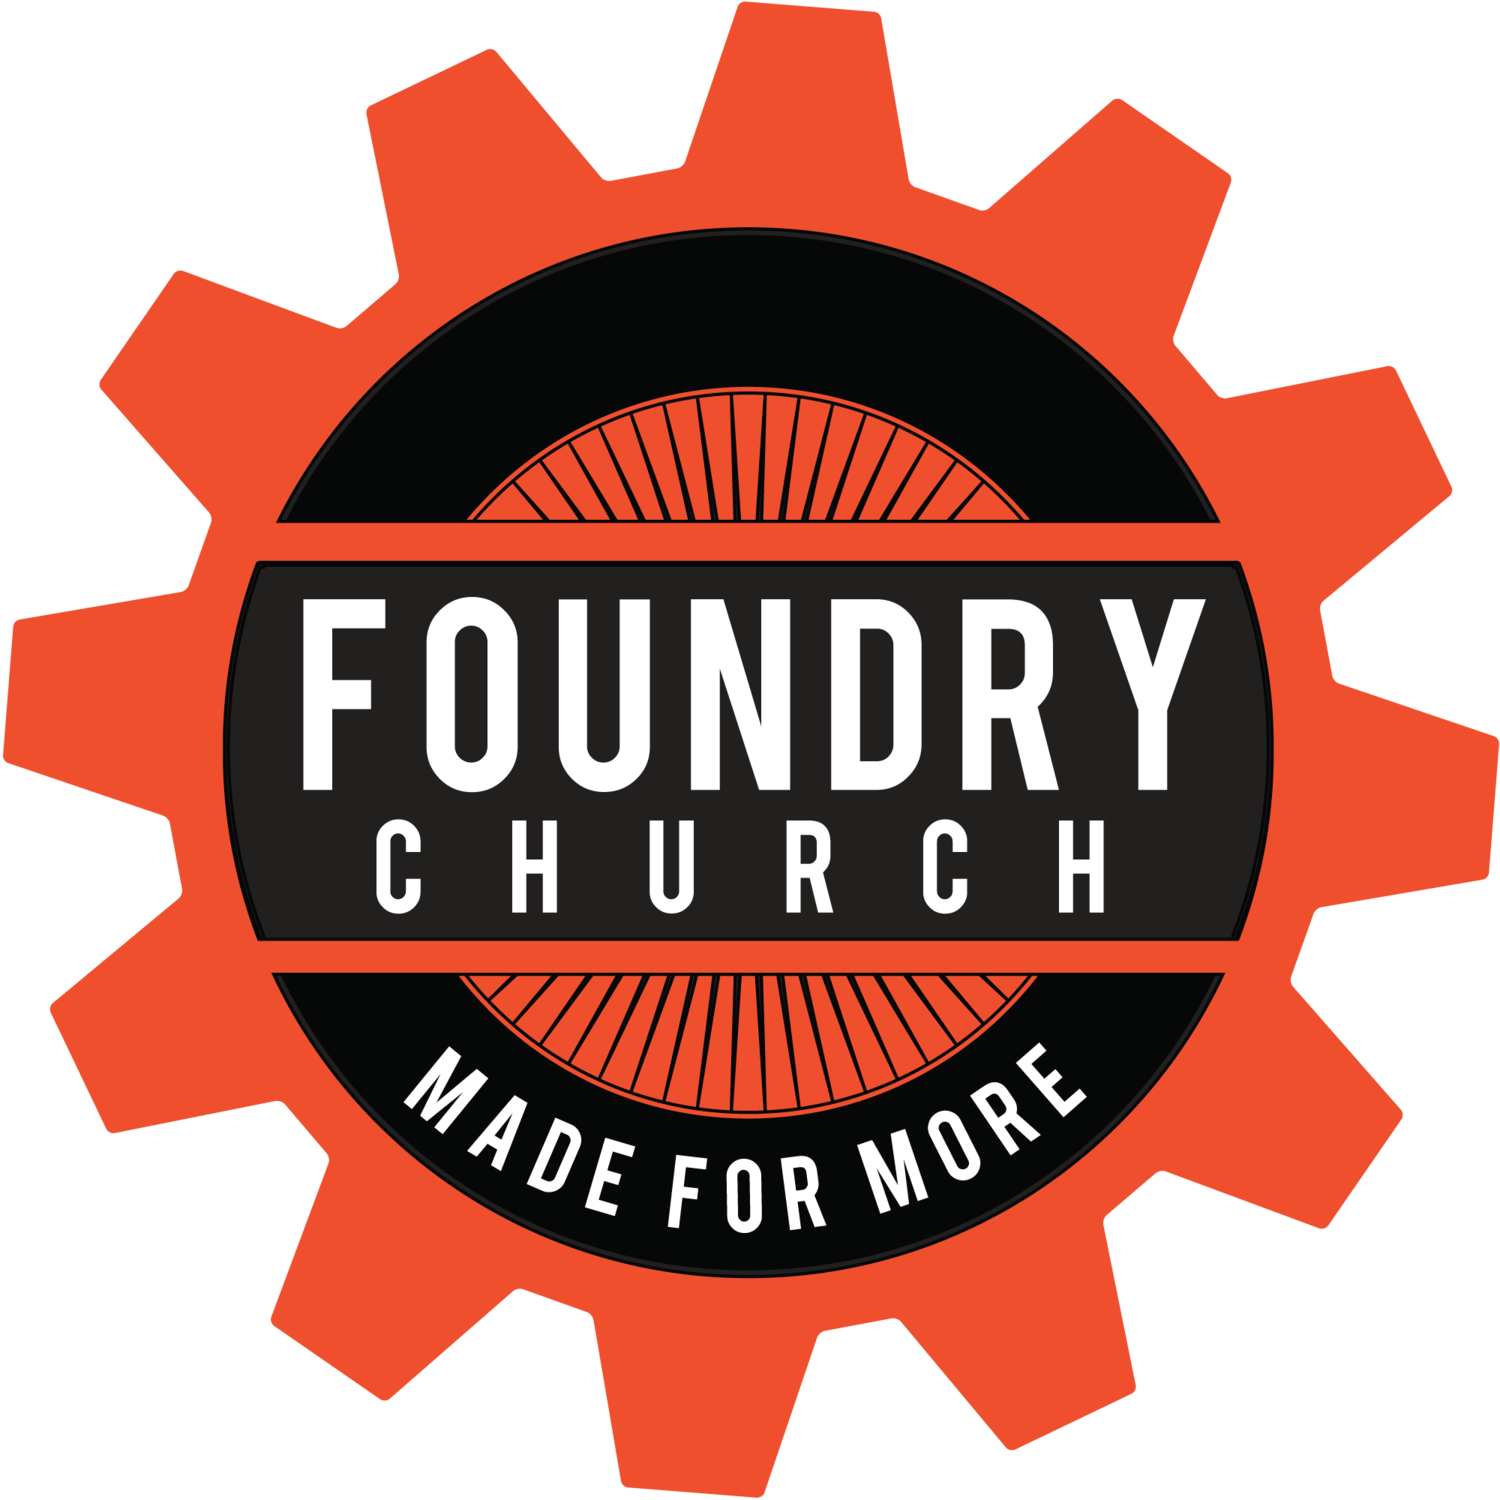 Foundry Church